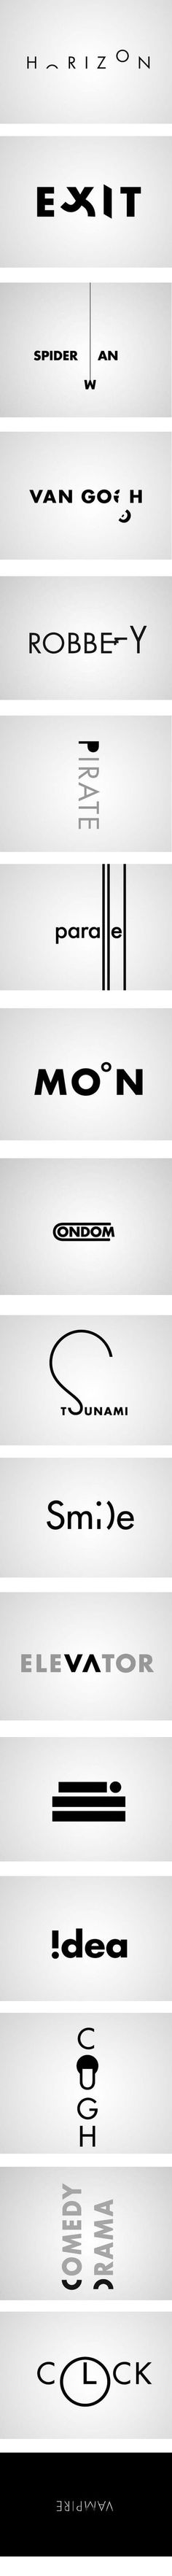 INSPIRATION....I wish I could edit out one of these...hahah awkward! -CJA Clever typographic art via wix blog